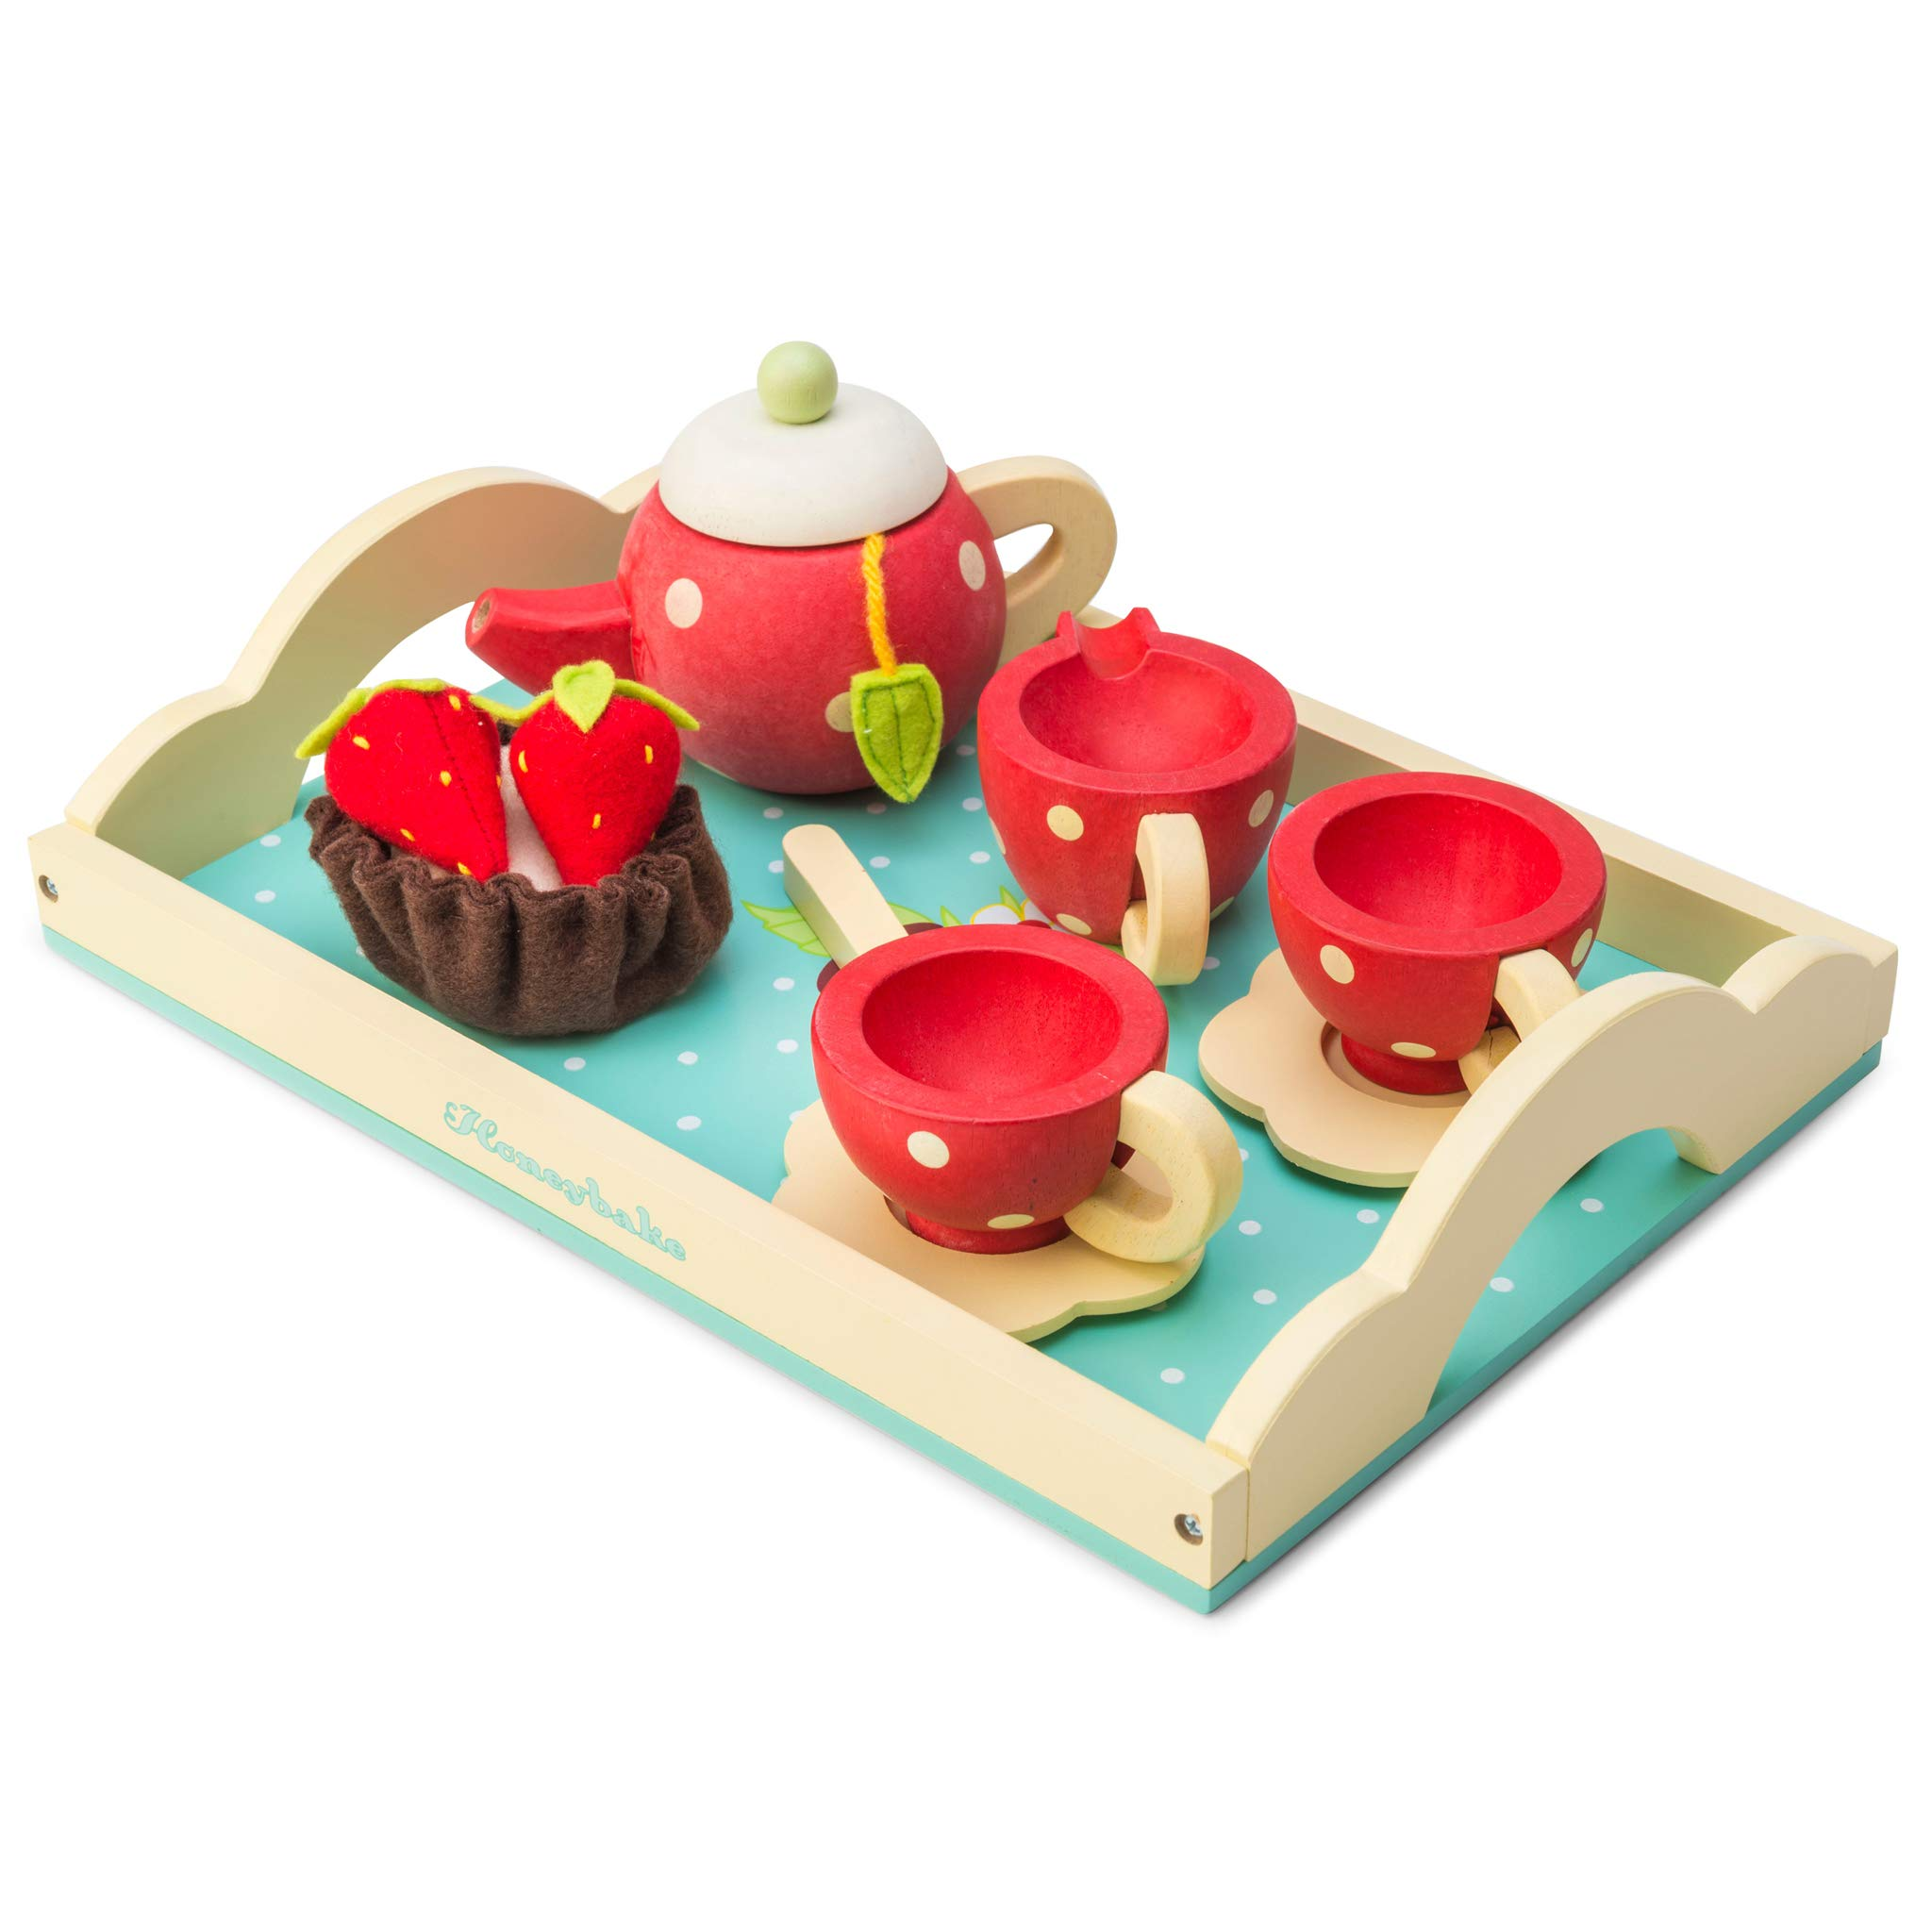 Le Toy Van Honeybake Tea Set - Strawberry Design Premium Wooden Toys for Kids Ages 3 years & Up by Le Toy Van